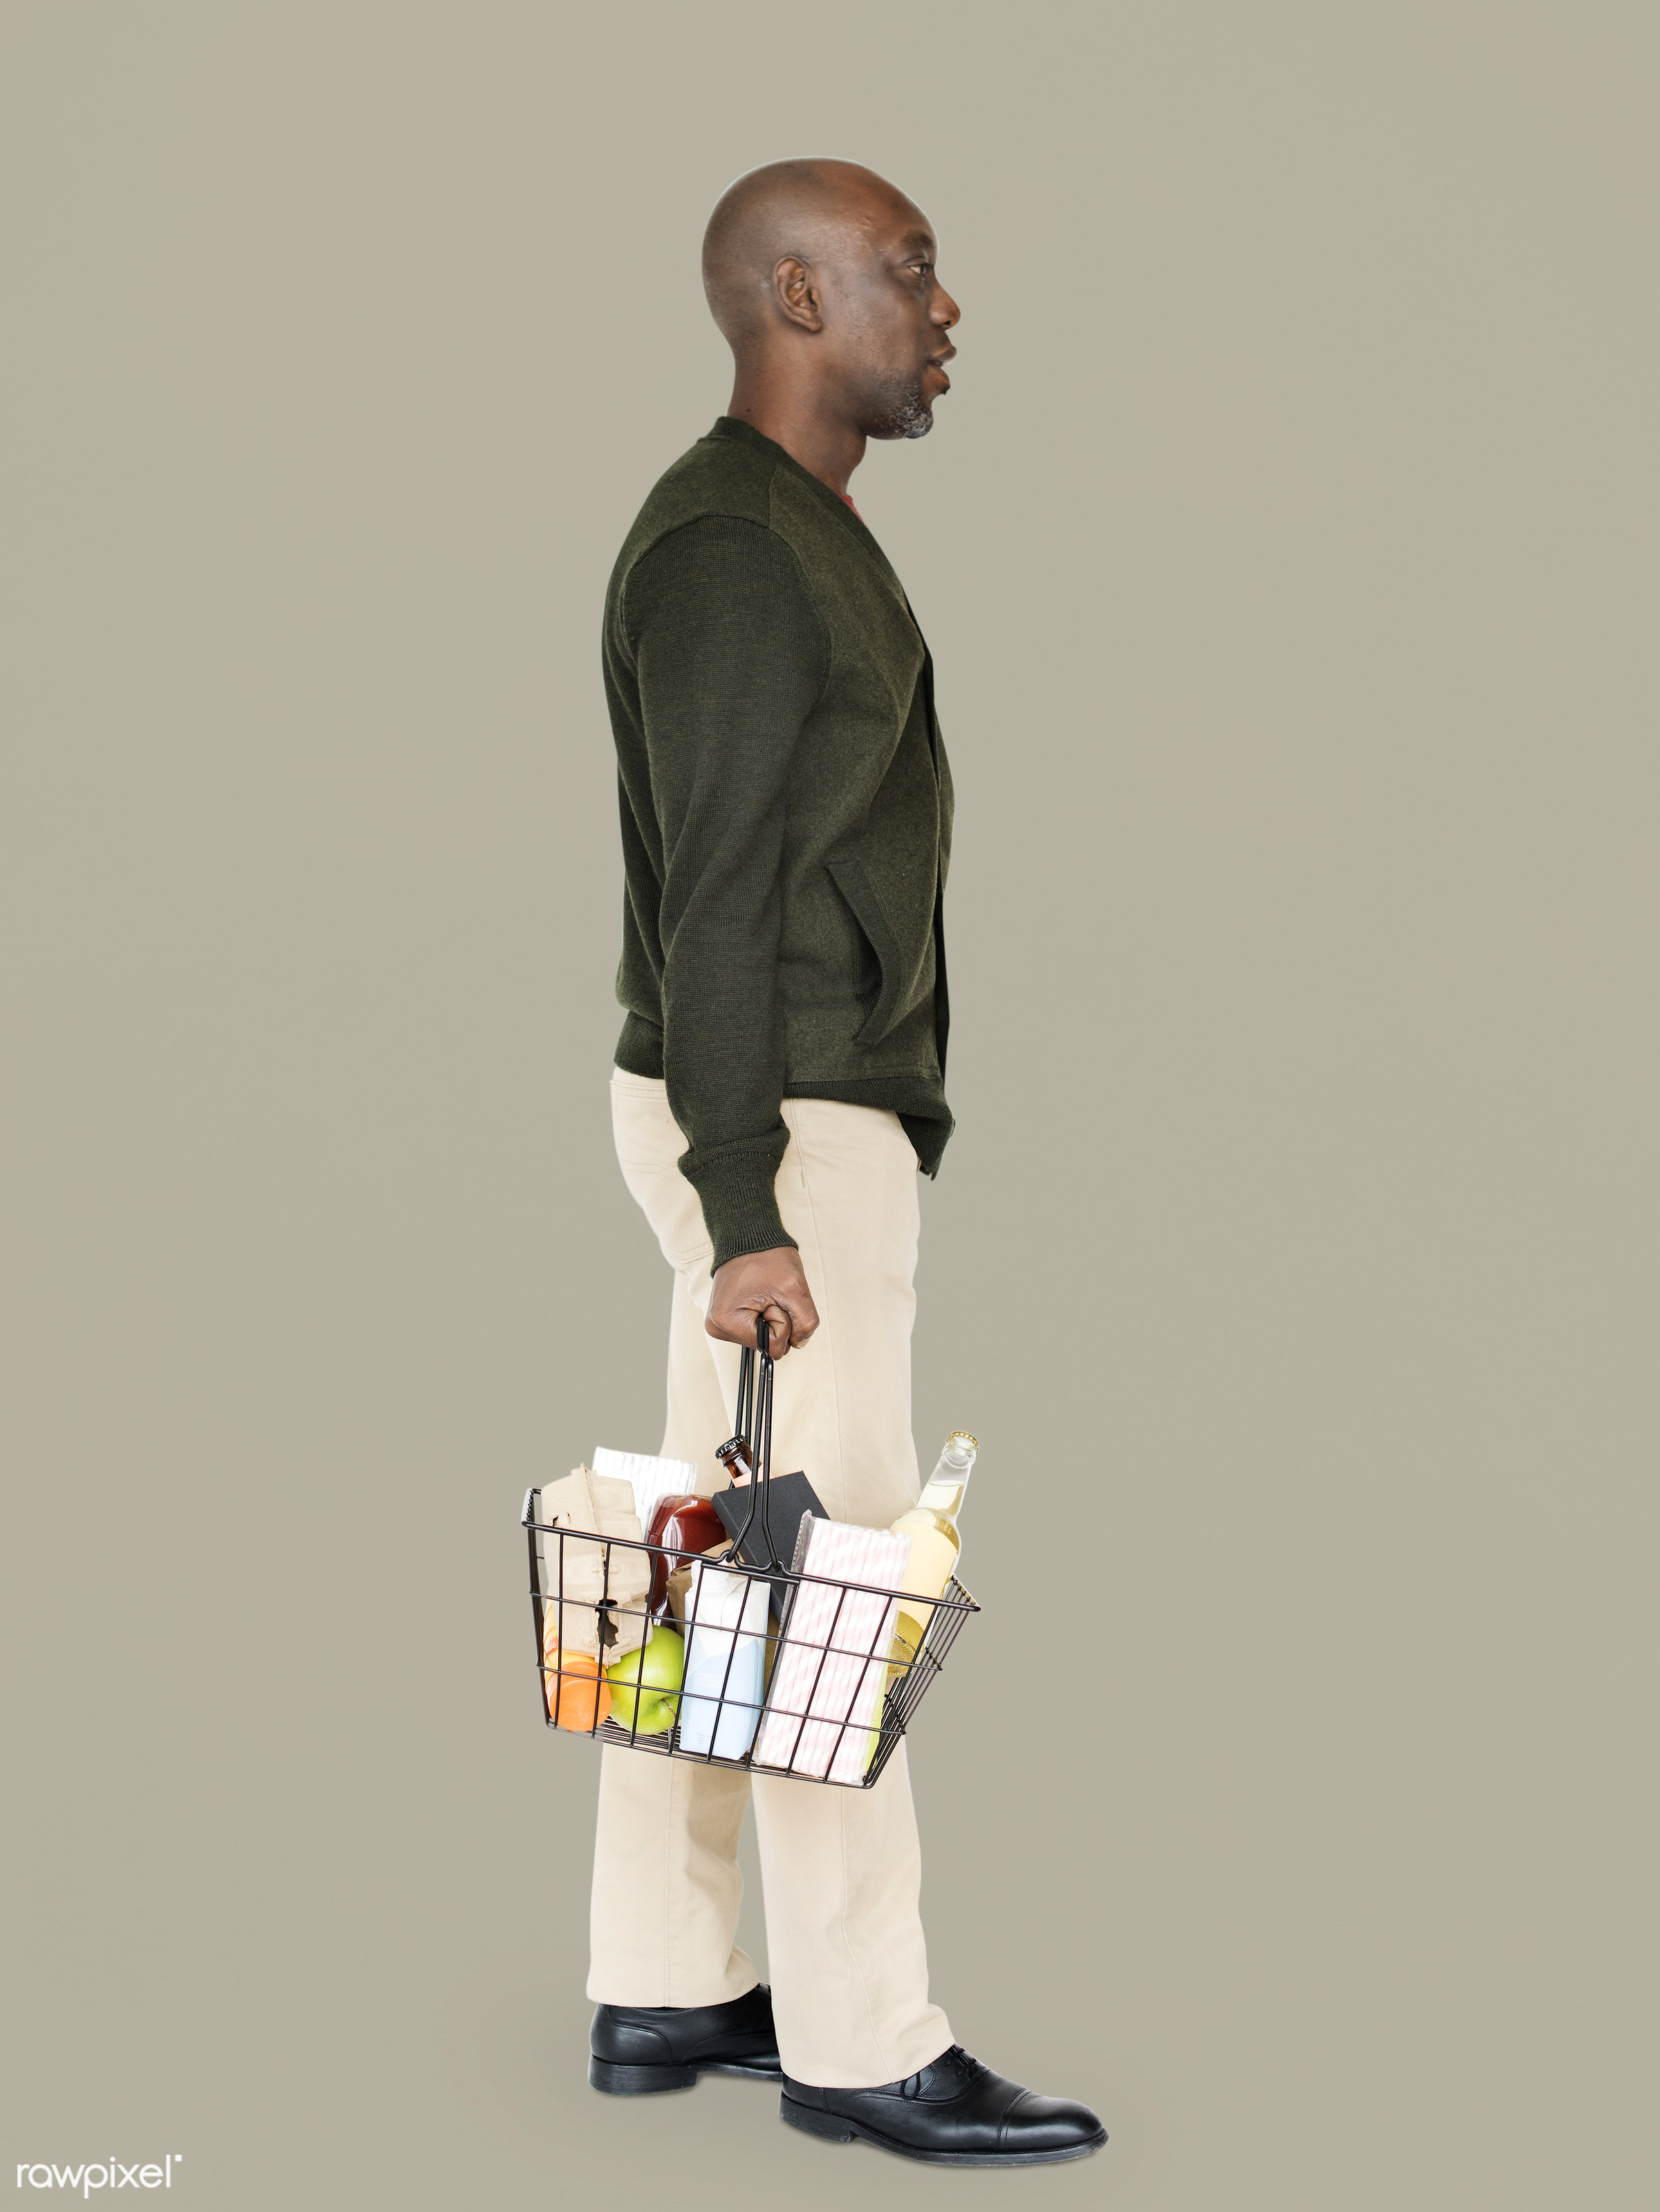 studio, expression, grocery, person, full length, merchandise, store, holding, customer, consumer, race, people, lifestyle,...